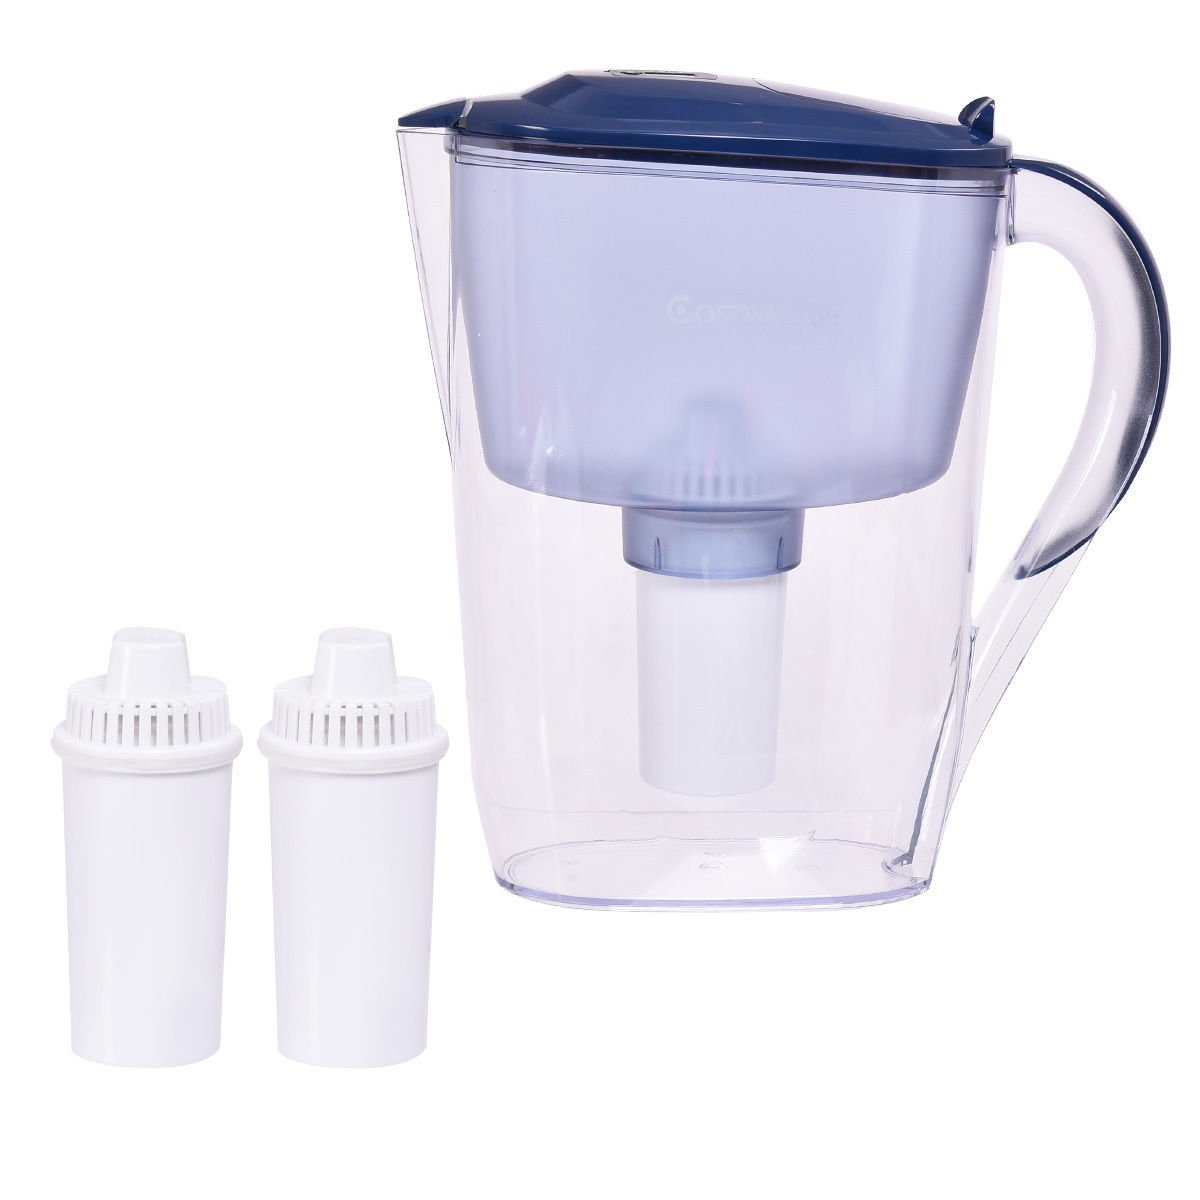 Costway 10 Cup Everyday BPA Free Water Pitcher Filter with 3 Filter (Blue) by COSTWAY